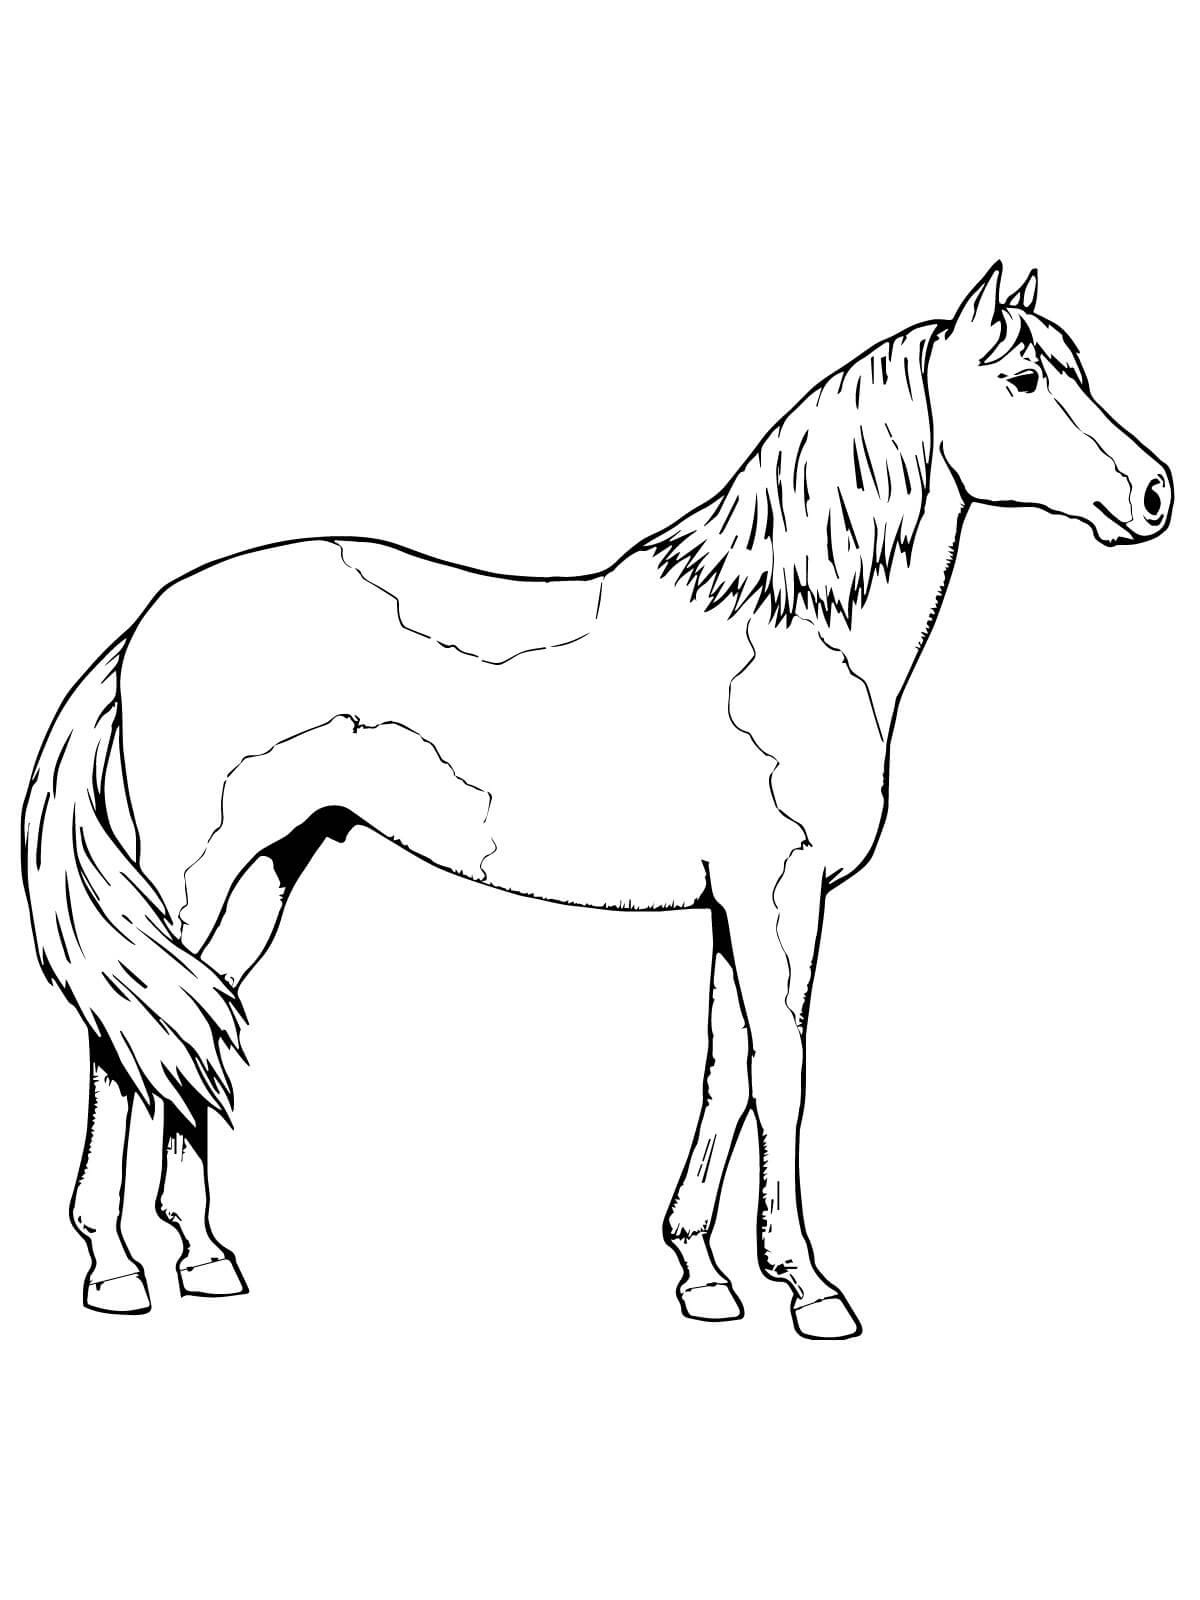 colouring horse coloring book page for adults print and download horse colouring horse